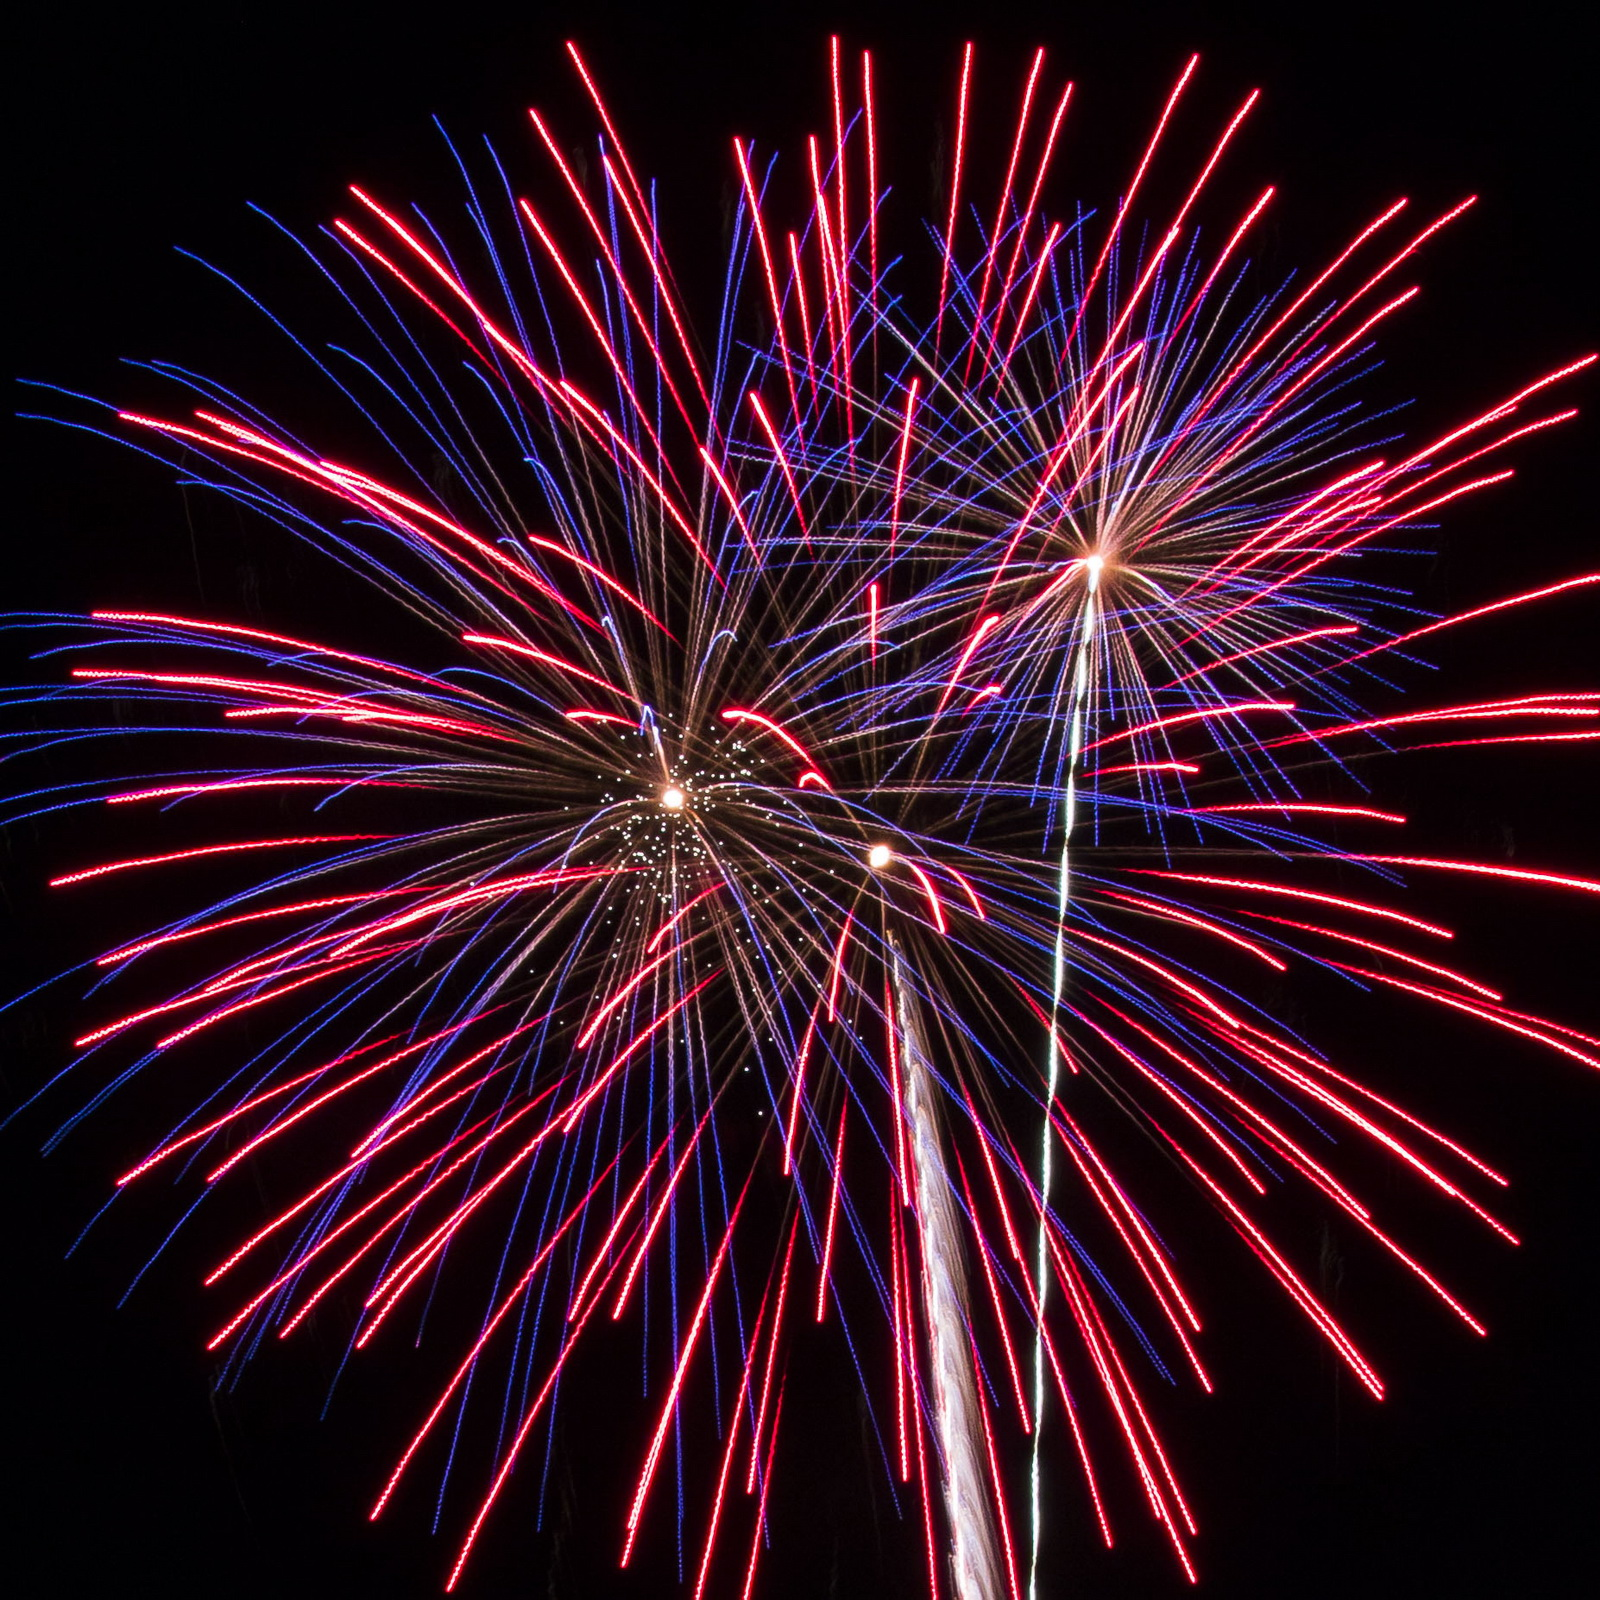 Massachusetts Fireworks: Patriotic Displays or red, white and blue